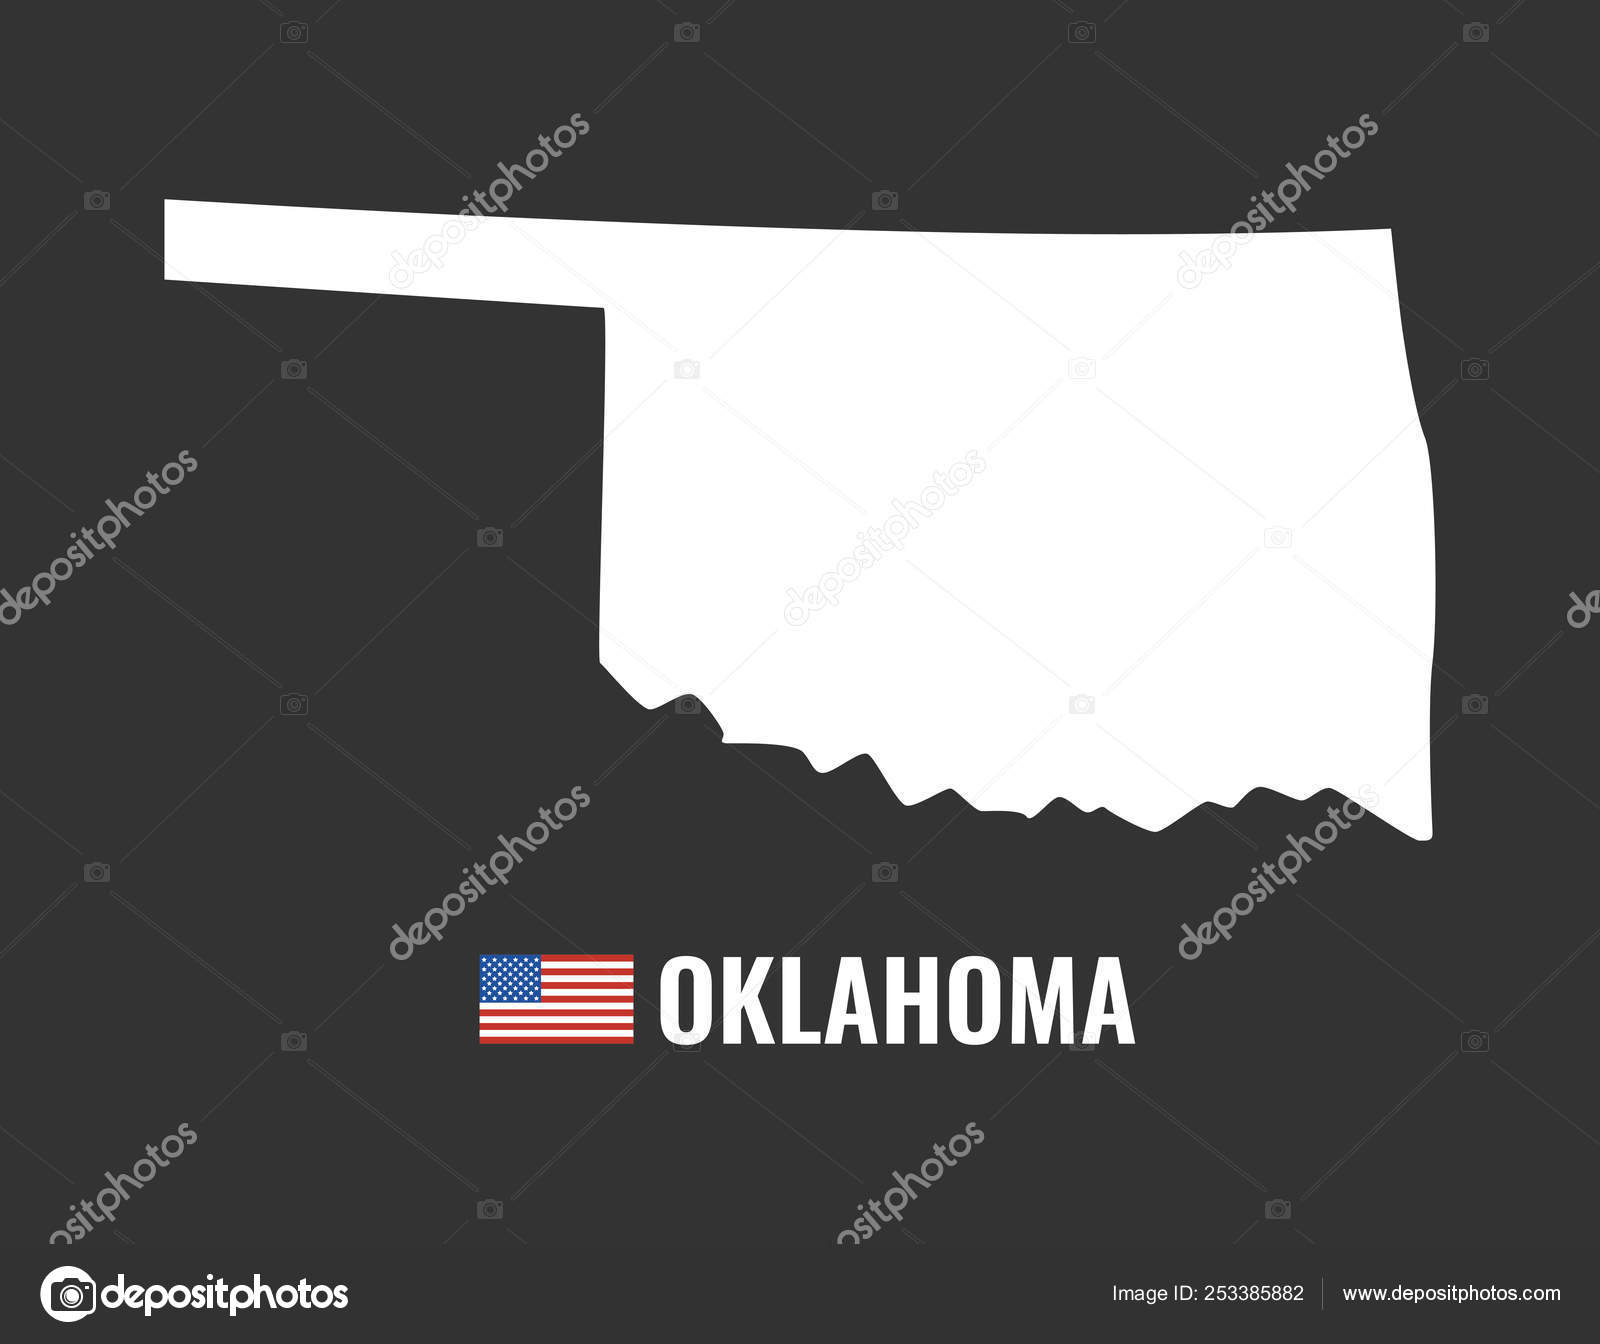 Oklahoma Map Isolated Black Background Silhouette Oklahoma ... on usa welcome logo, usa parking logo, google maps logo, united states logo, usa art logo, usa restaurant logo, usa car logo, usa login logo, us states logo, usa letter logo, usa outline logo, usa union logo, education usa logo, north america logo, usa baseball logo, usa travel logo, usa school logo, usa hockey logo, product of usa logo, usa hat logo,